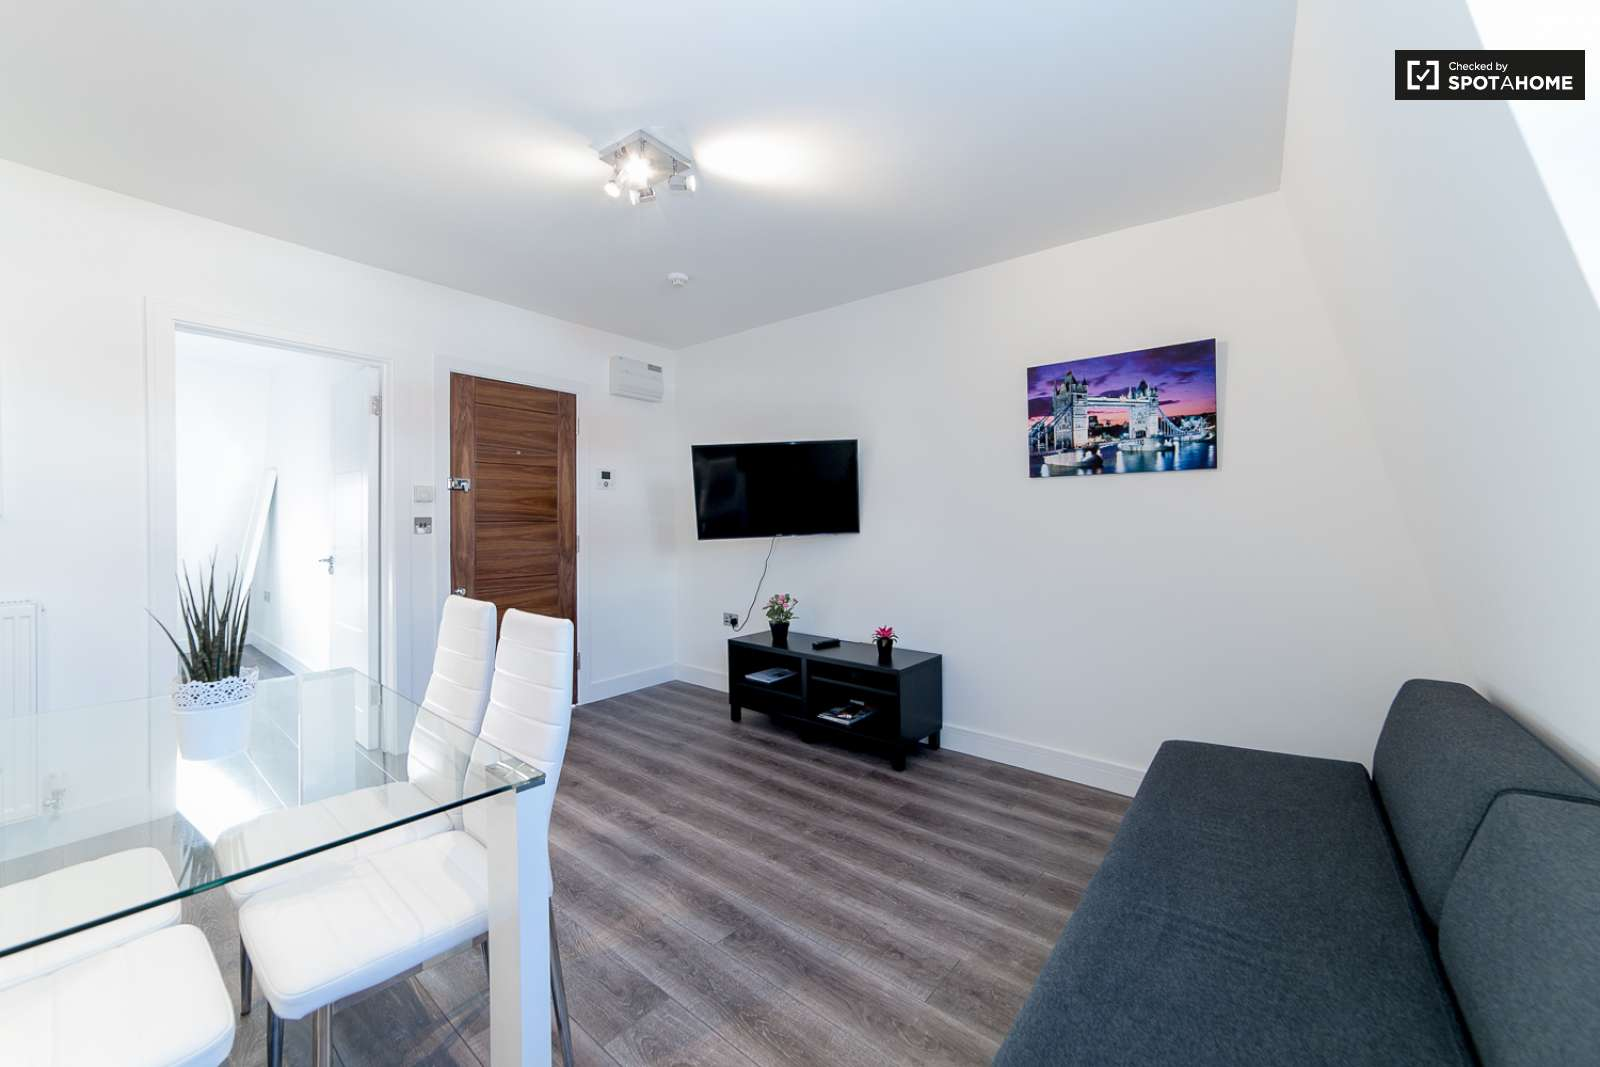 Modern 2-bedroom flat to rent in Notting Hill, London (ref: 149555 ...